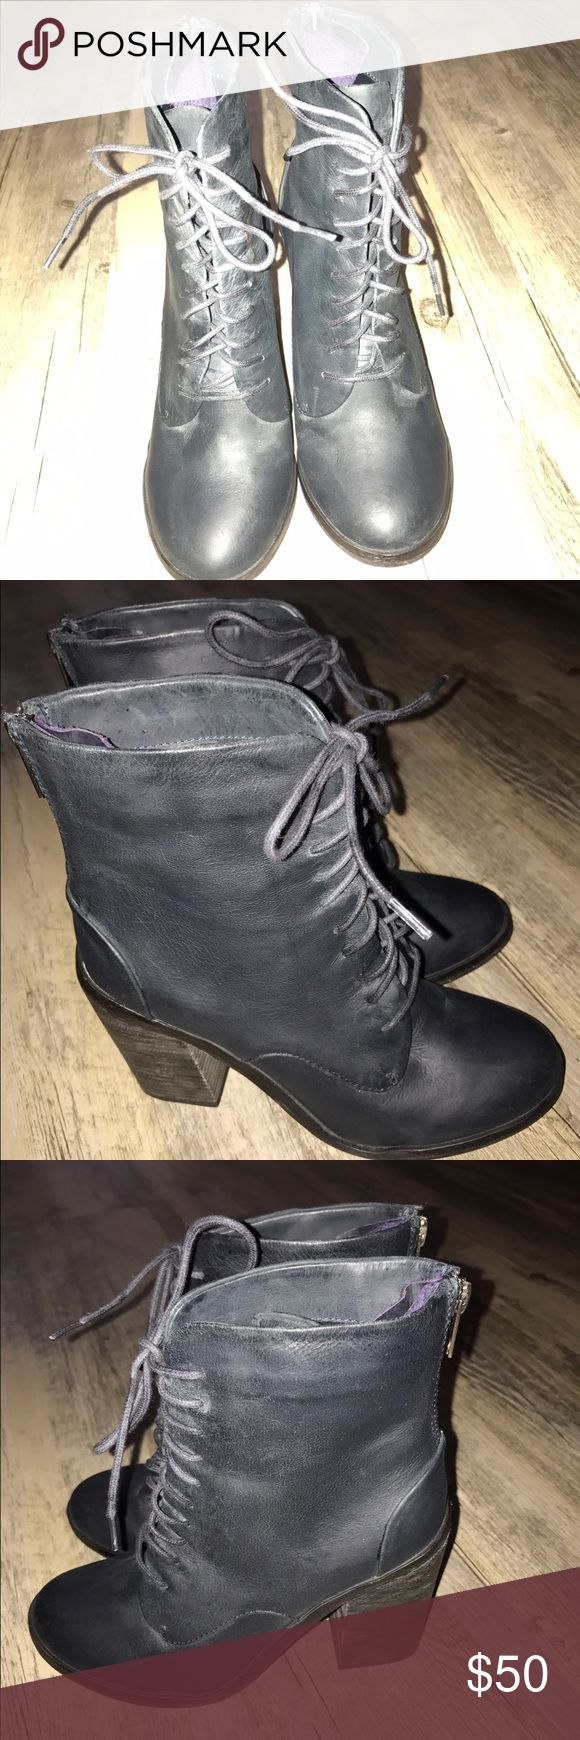 WOMEN'S SHOEMINT GENUINE LEATHER BLK/GREY BOOTS WOMEN'S SHOEMINT GENUINE LEATHER LACEUP STACK HEEL BLK/GREY BOOTS SZ: 6 W/REAR ZIPPER DETAIL CLOSURE! GOOD CONDITION‼️ AS IS‼️ NO BOX‼️ NO TRADES‼️ Shoemint Shoes Lace Up Boots